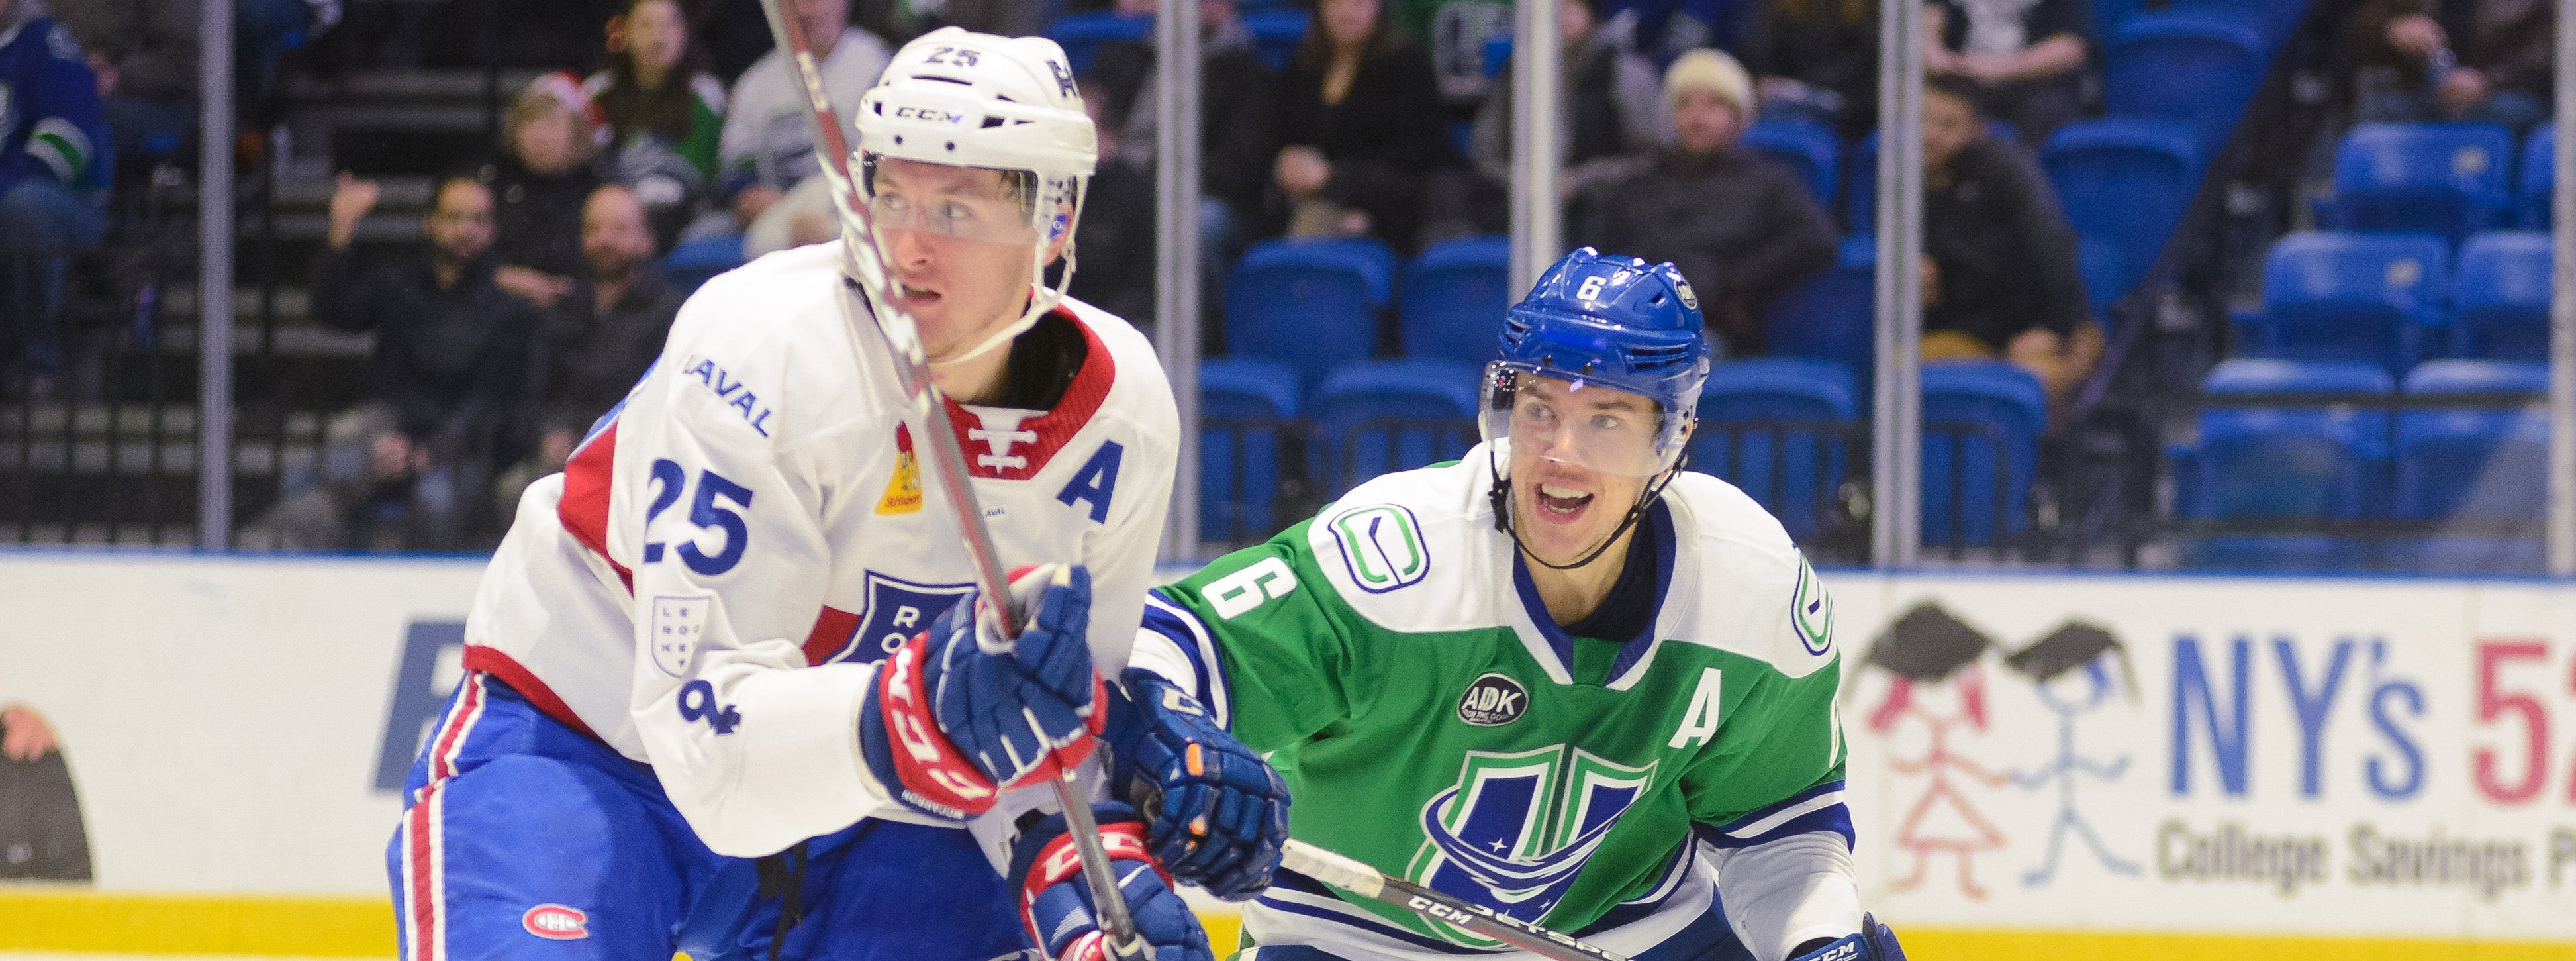 COMETS END FOUR-GAME ROAD TRIP IN LAVAL